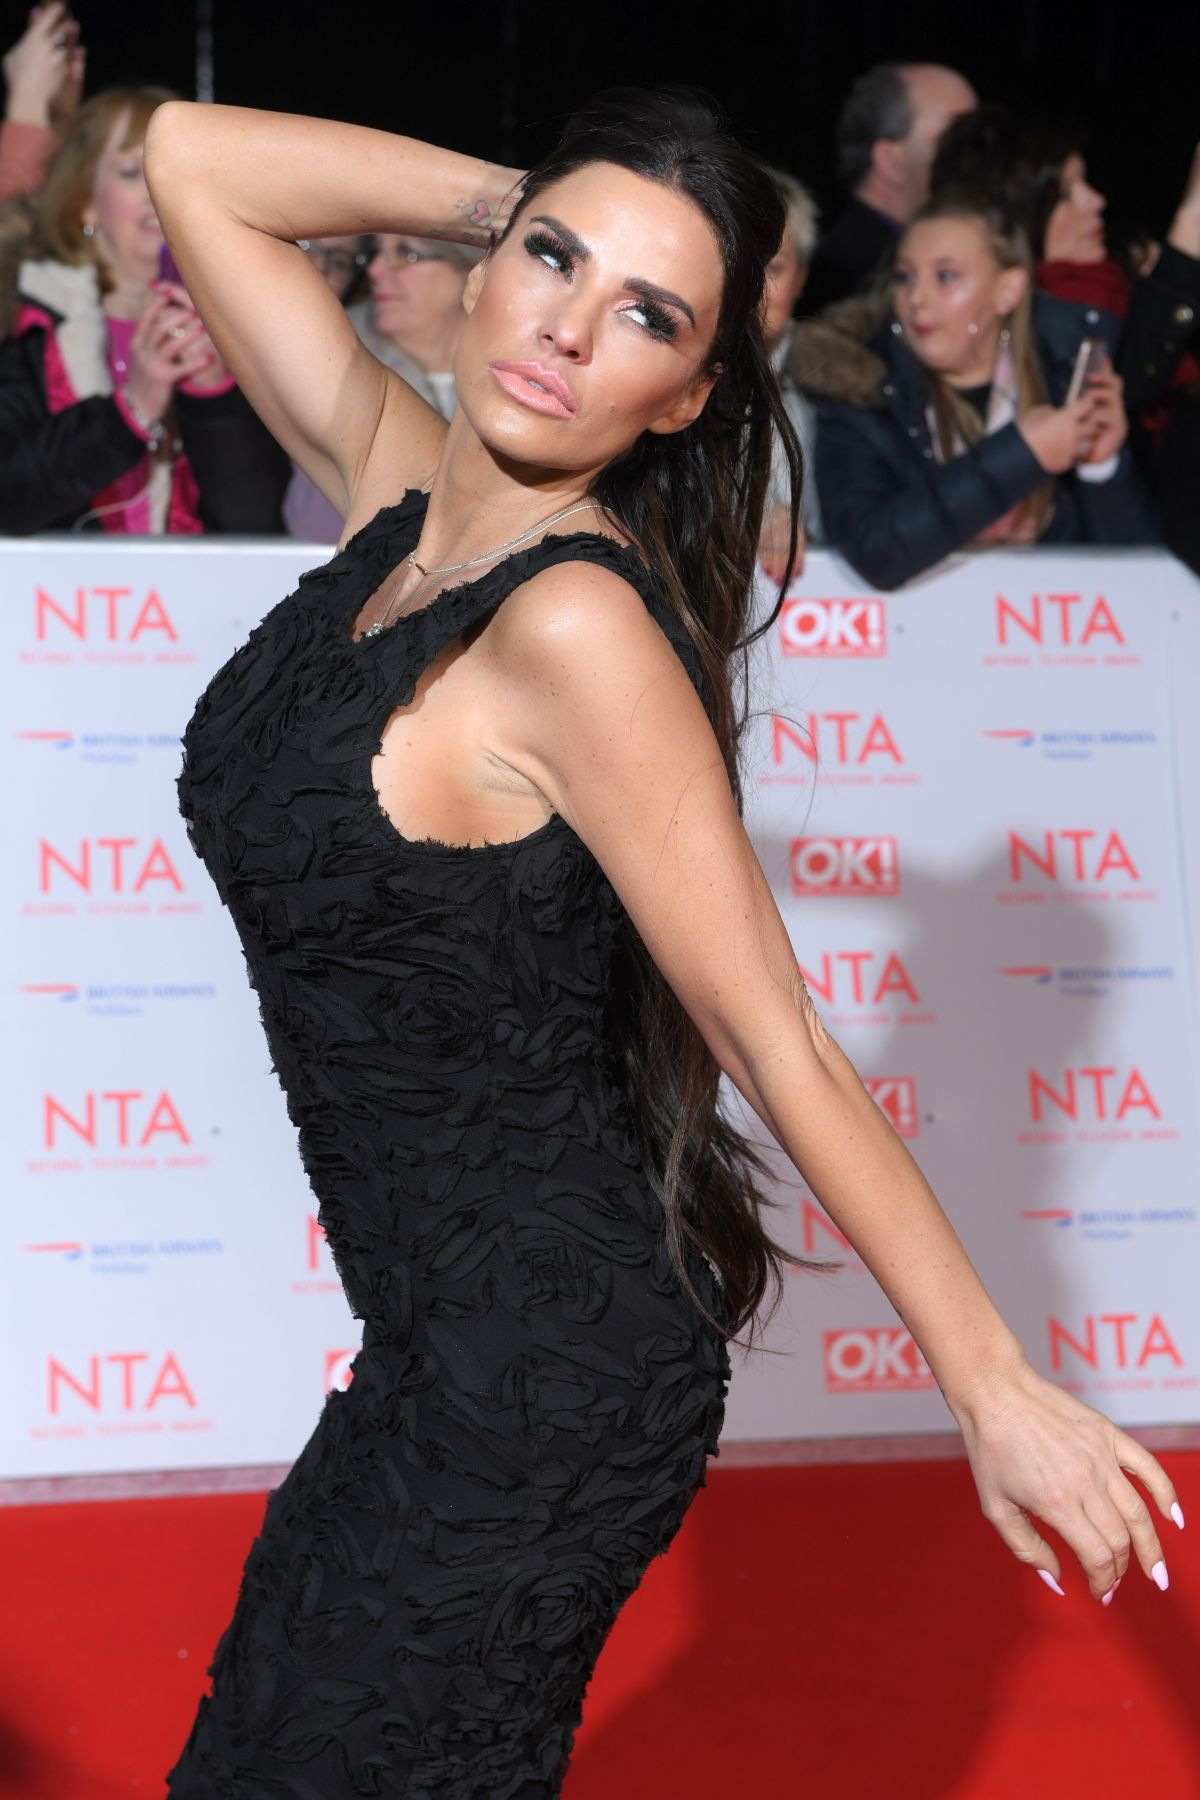 KATIE PRICE at National Television Awards in London 01/23